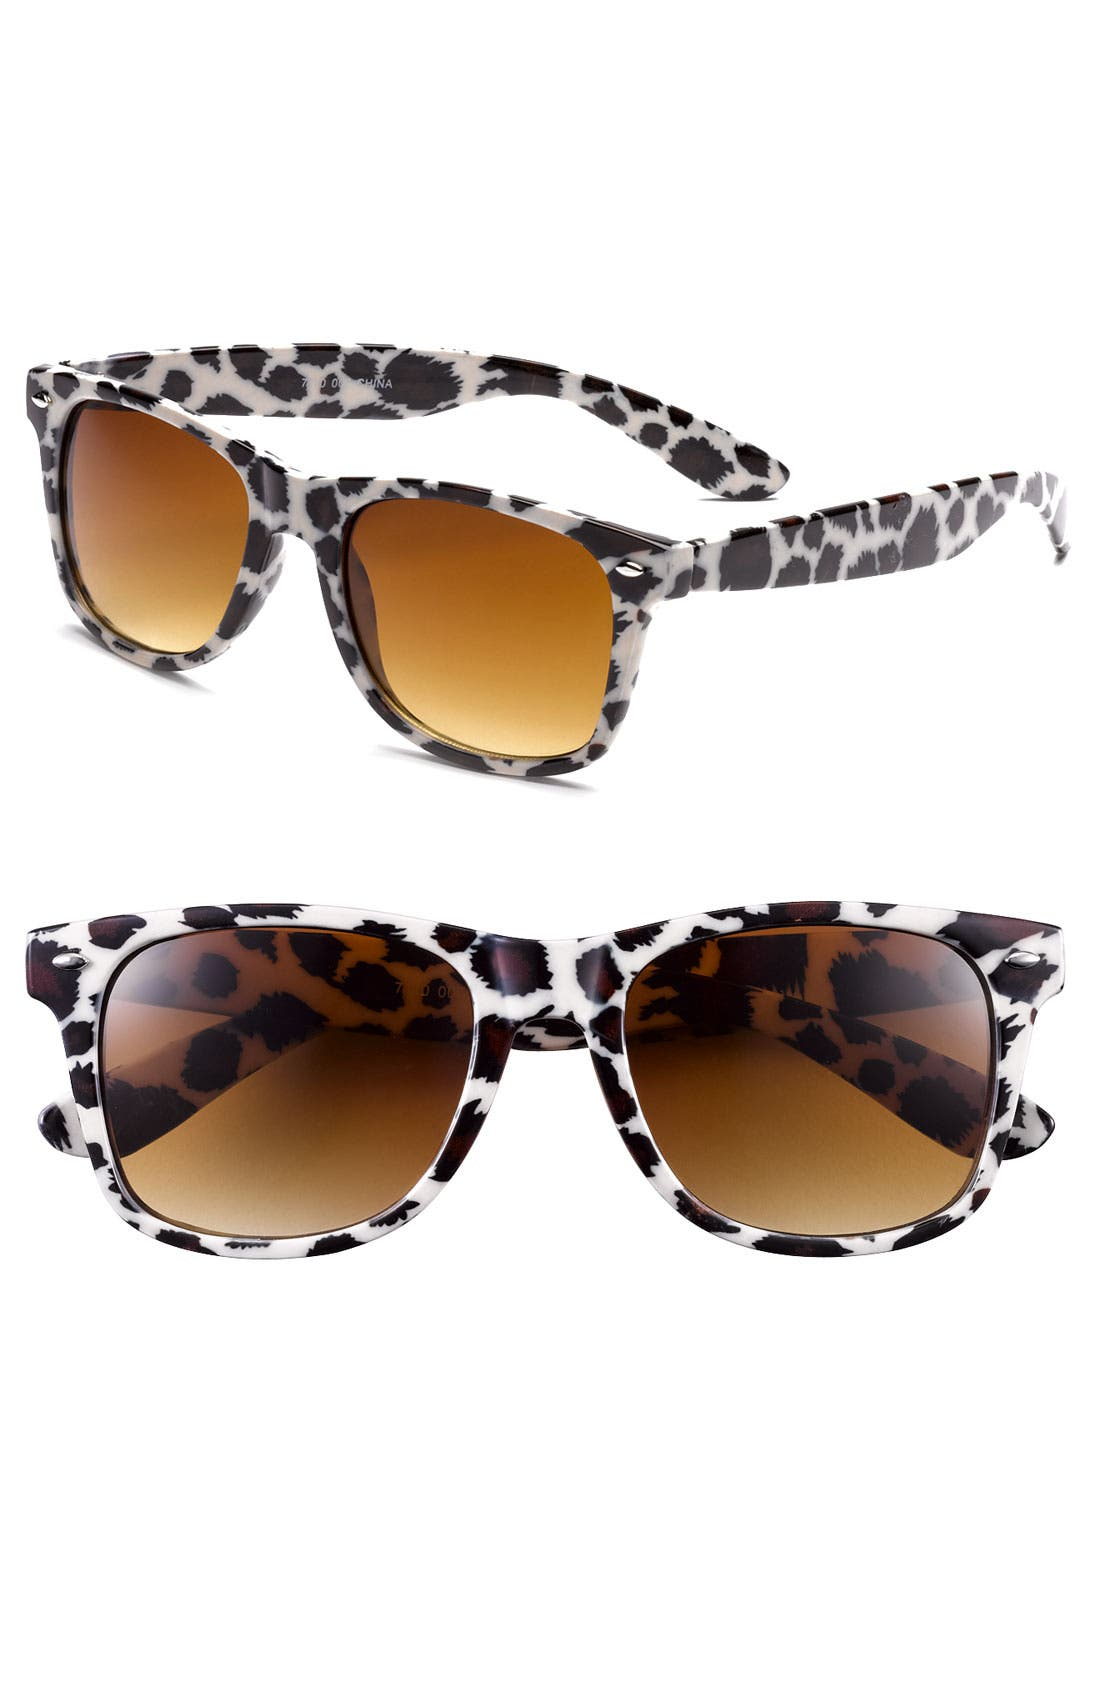 Main Image - KW 'Punky' Sunglasses (2 for $20)